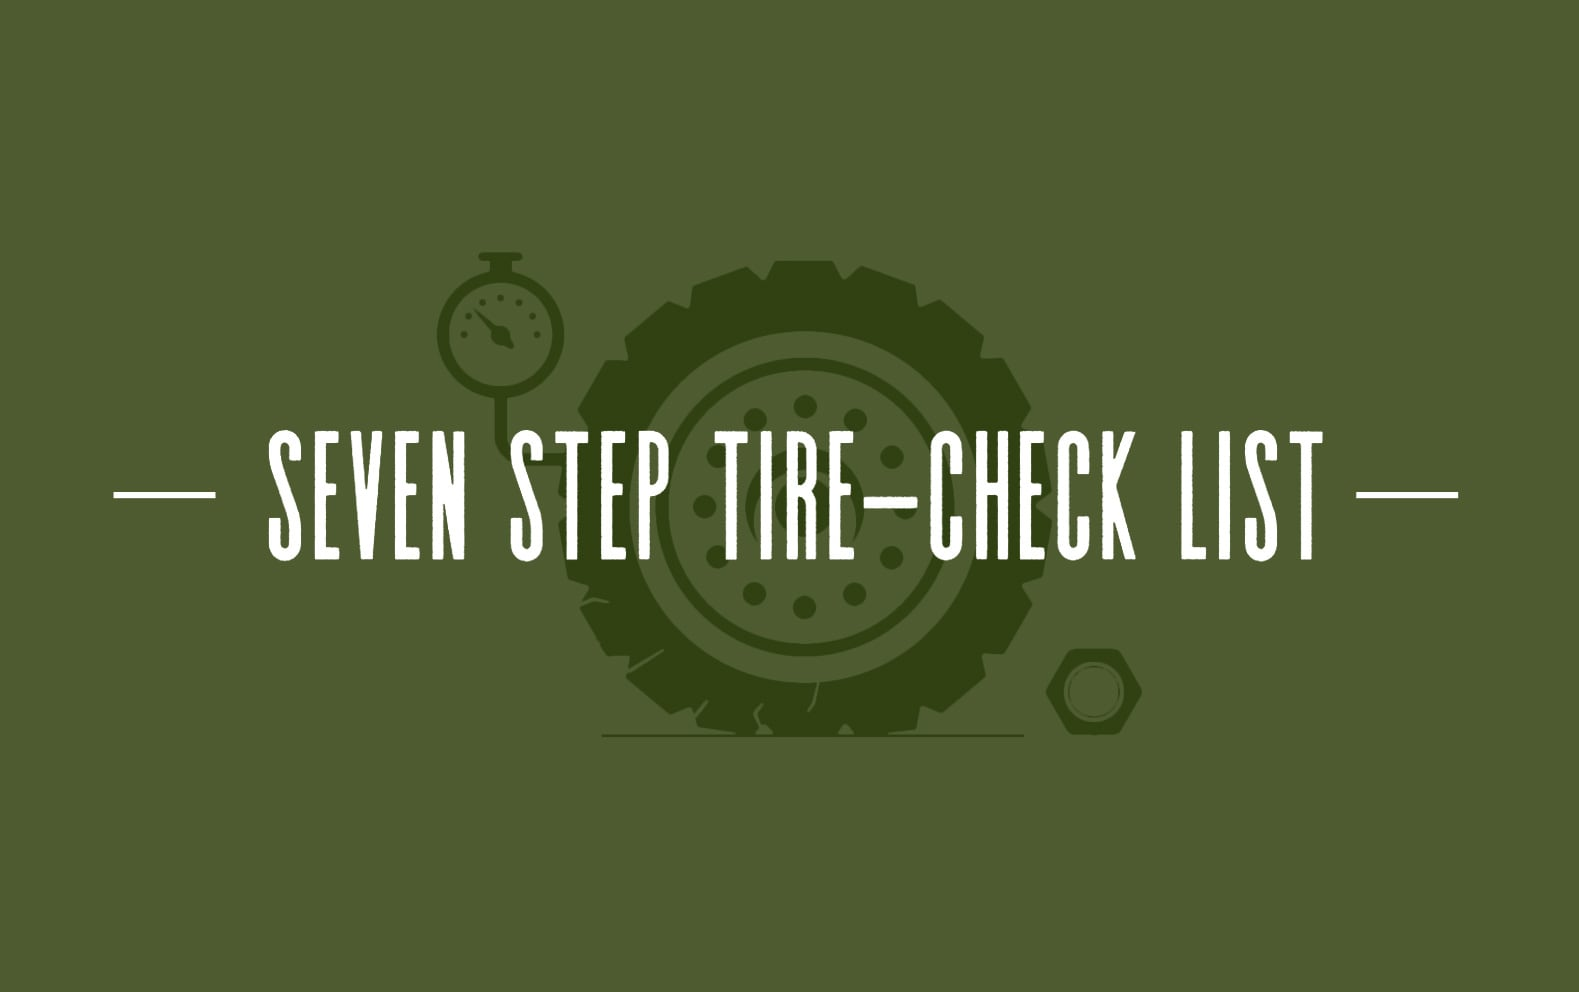 7-STEP TIRE CHECK